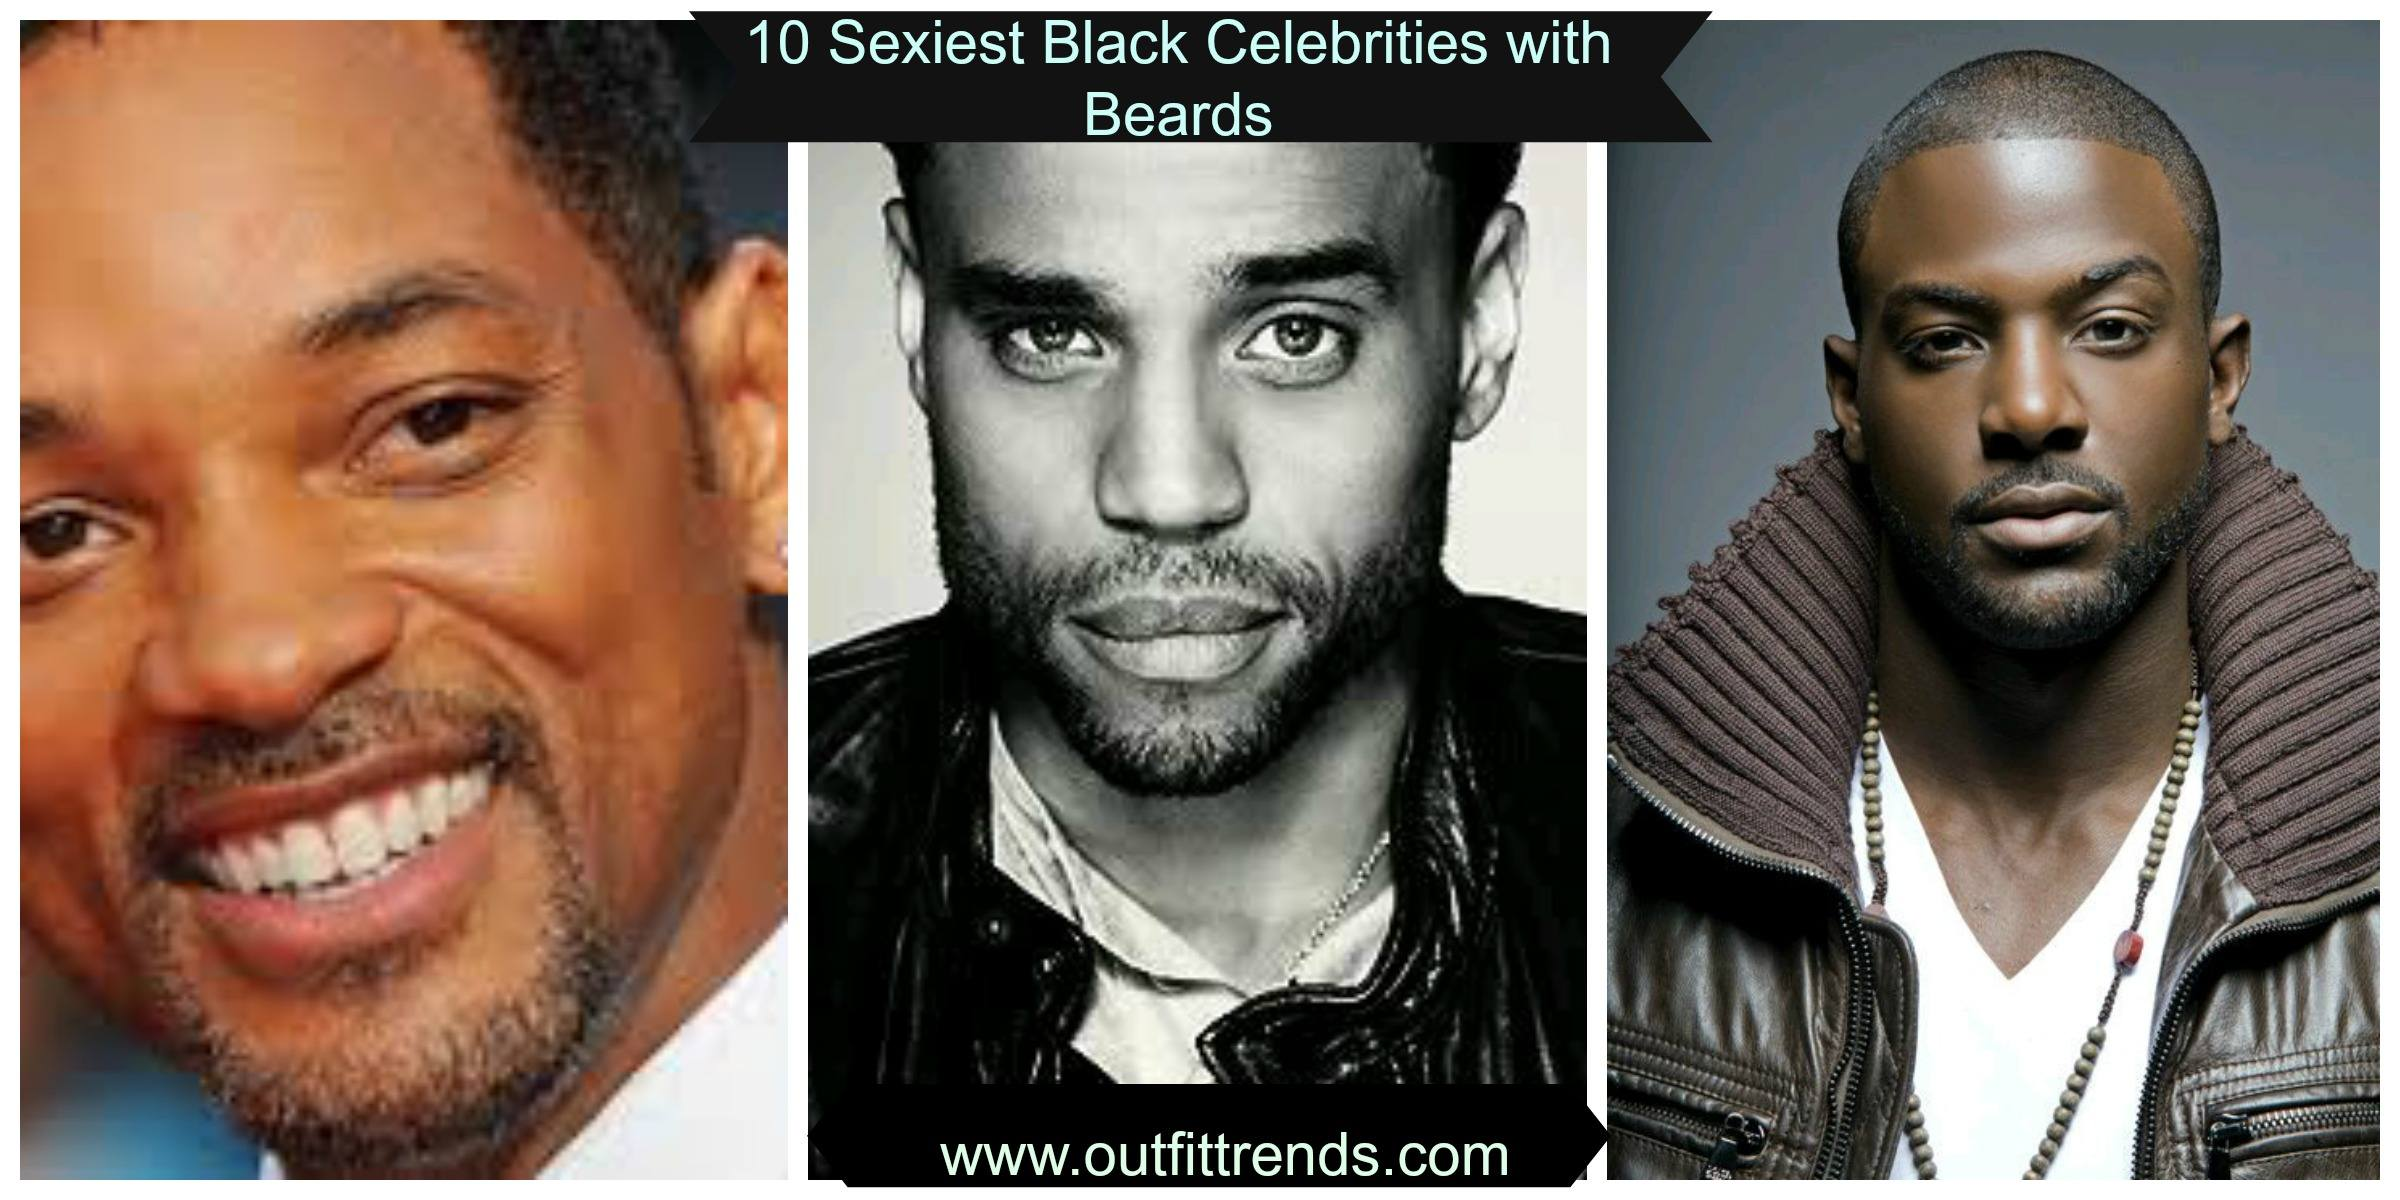 Black Celebrities with Beards-10 Sexiest Black Actors with Beards